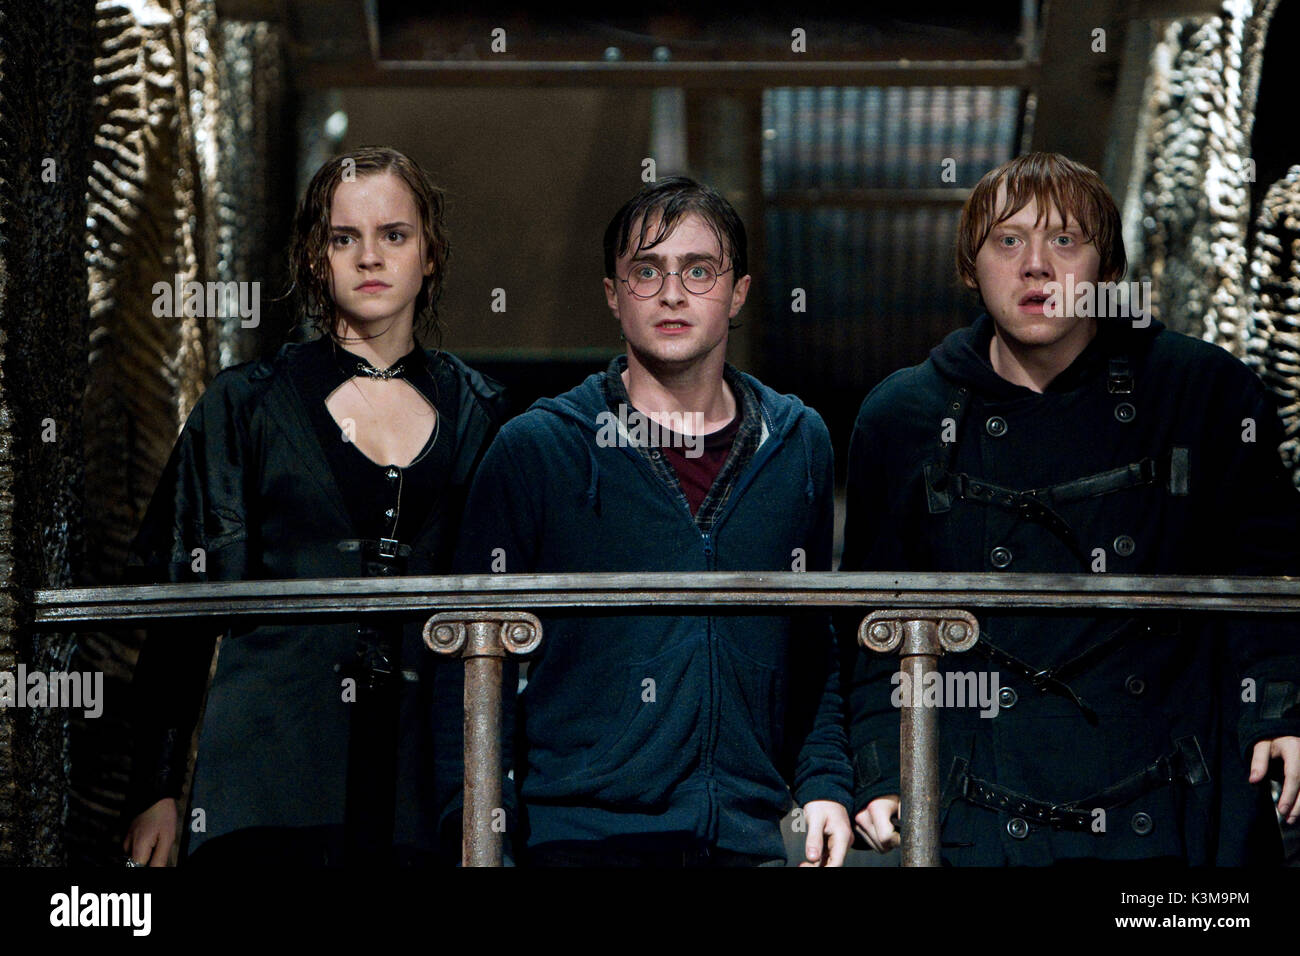 HARRY POTTER AND THE DEATHLY HALLOWS : PART 2 EMMA WATSON as Hermionie Granger, DANIEL RADCLIFFE as Harry Potter, RUPERT GRINT as Ron Weasley     Date: 2011 - Stock Image